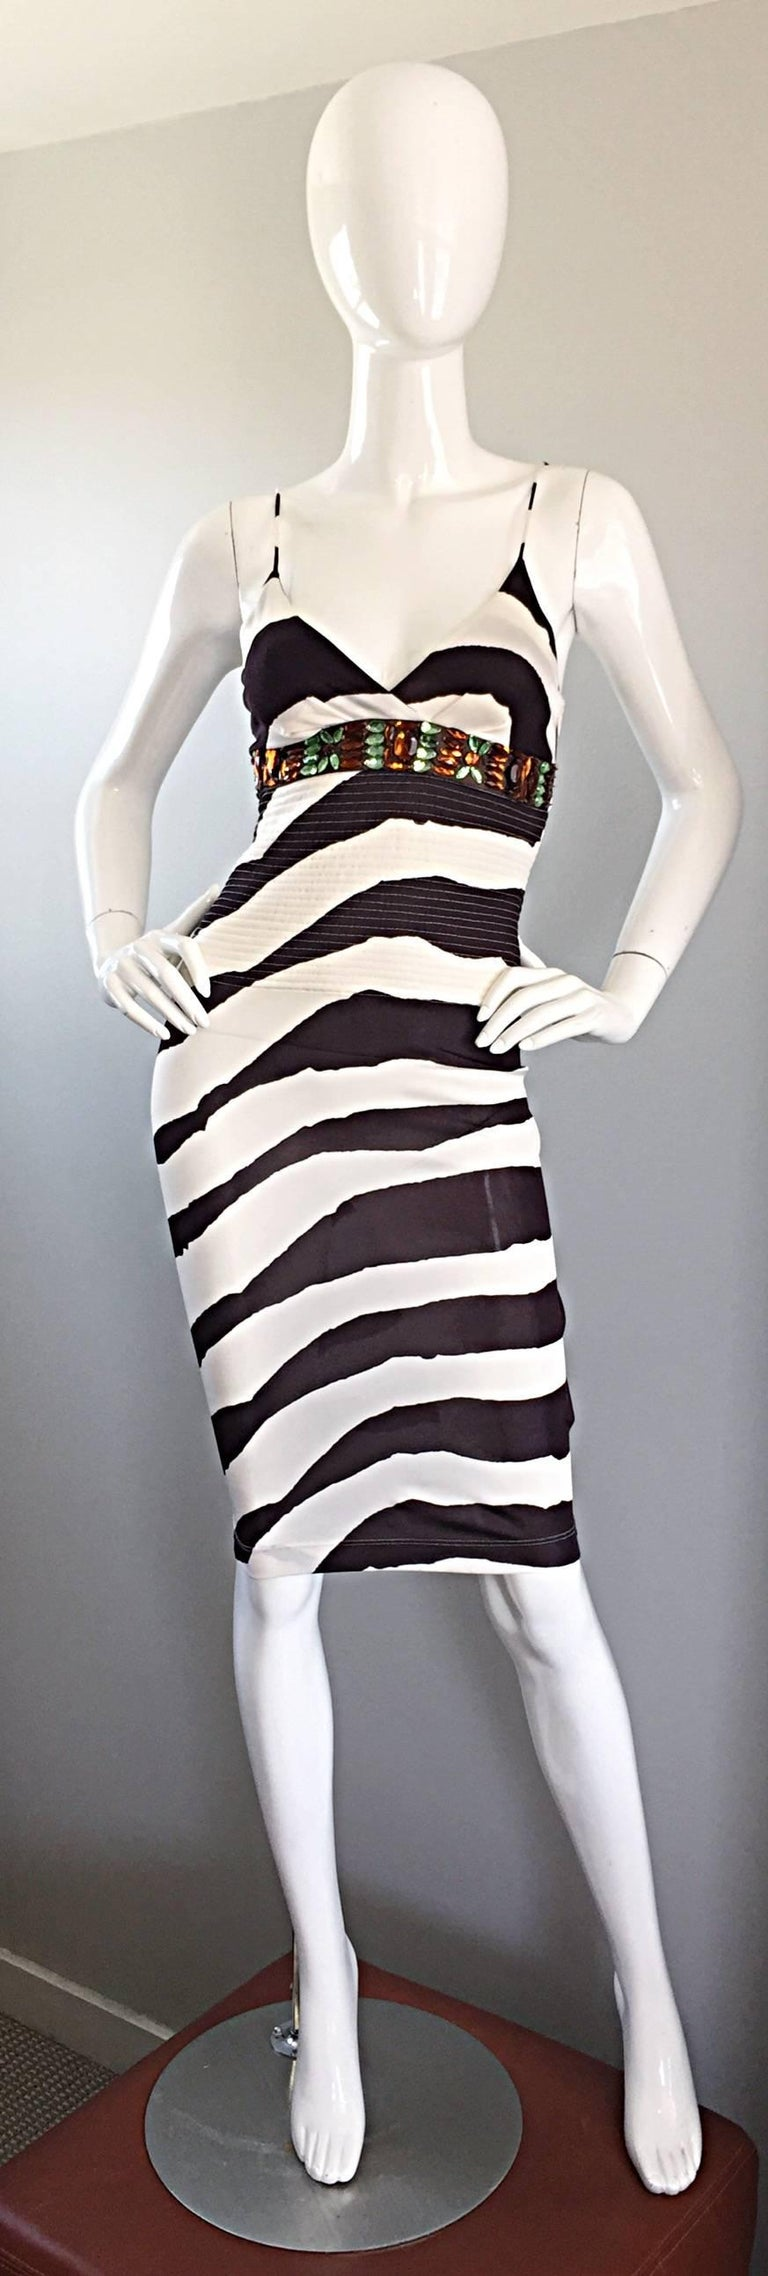 Amazing vintage GIANFRANCO FERRE (early 90s) brown and white abstract zebra printed rayon jersey BodyCon dress! Features incredible Amber and green crystal jewels below bust. Intricate stitching below bust. Hidden zipper up the side with